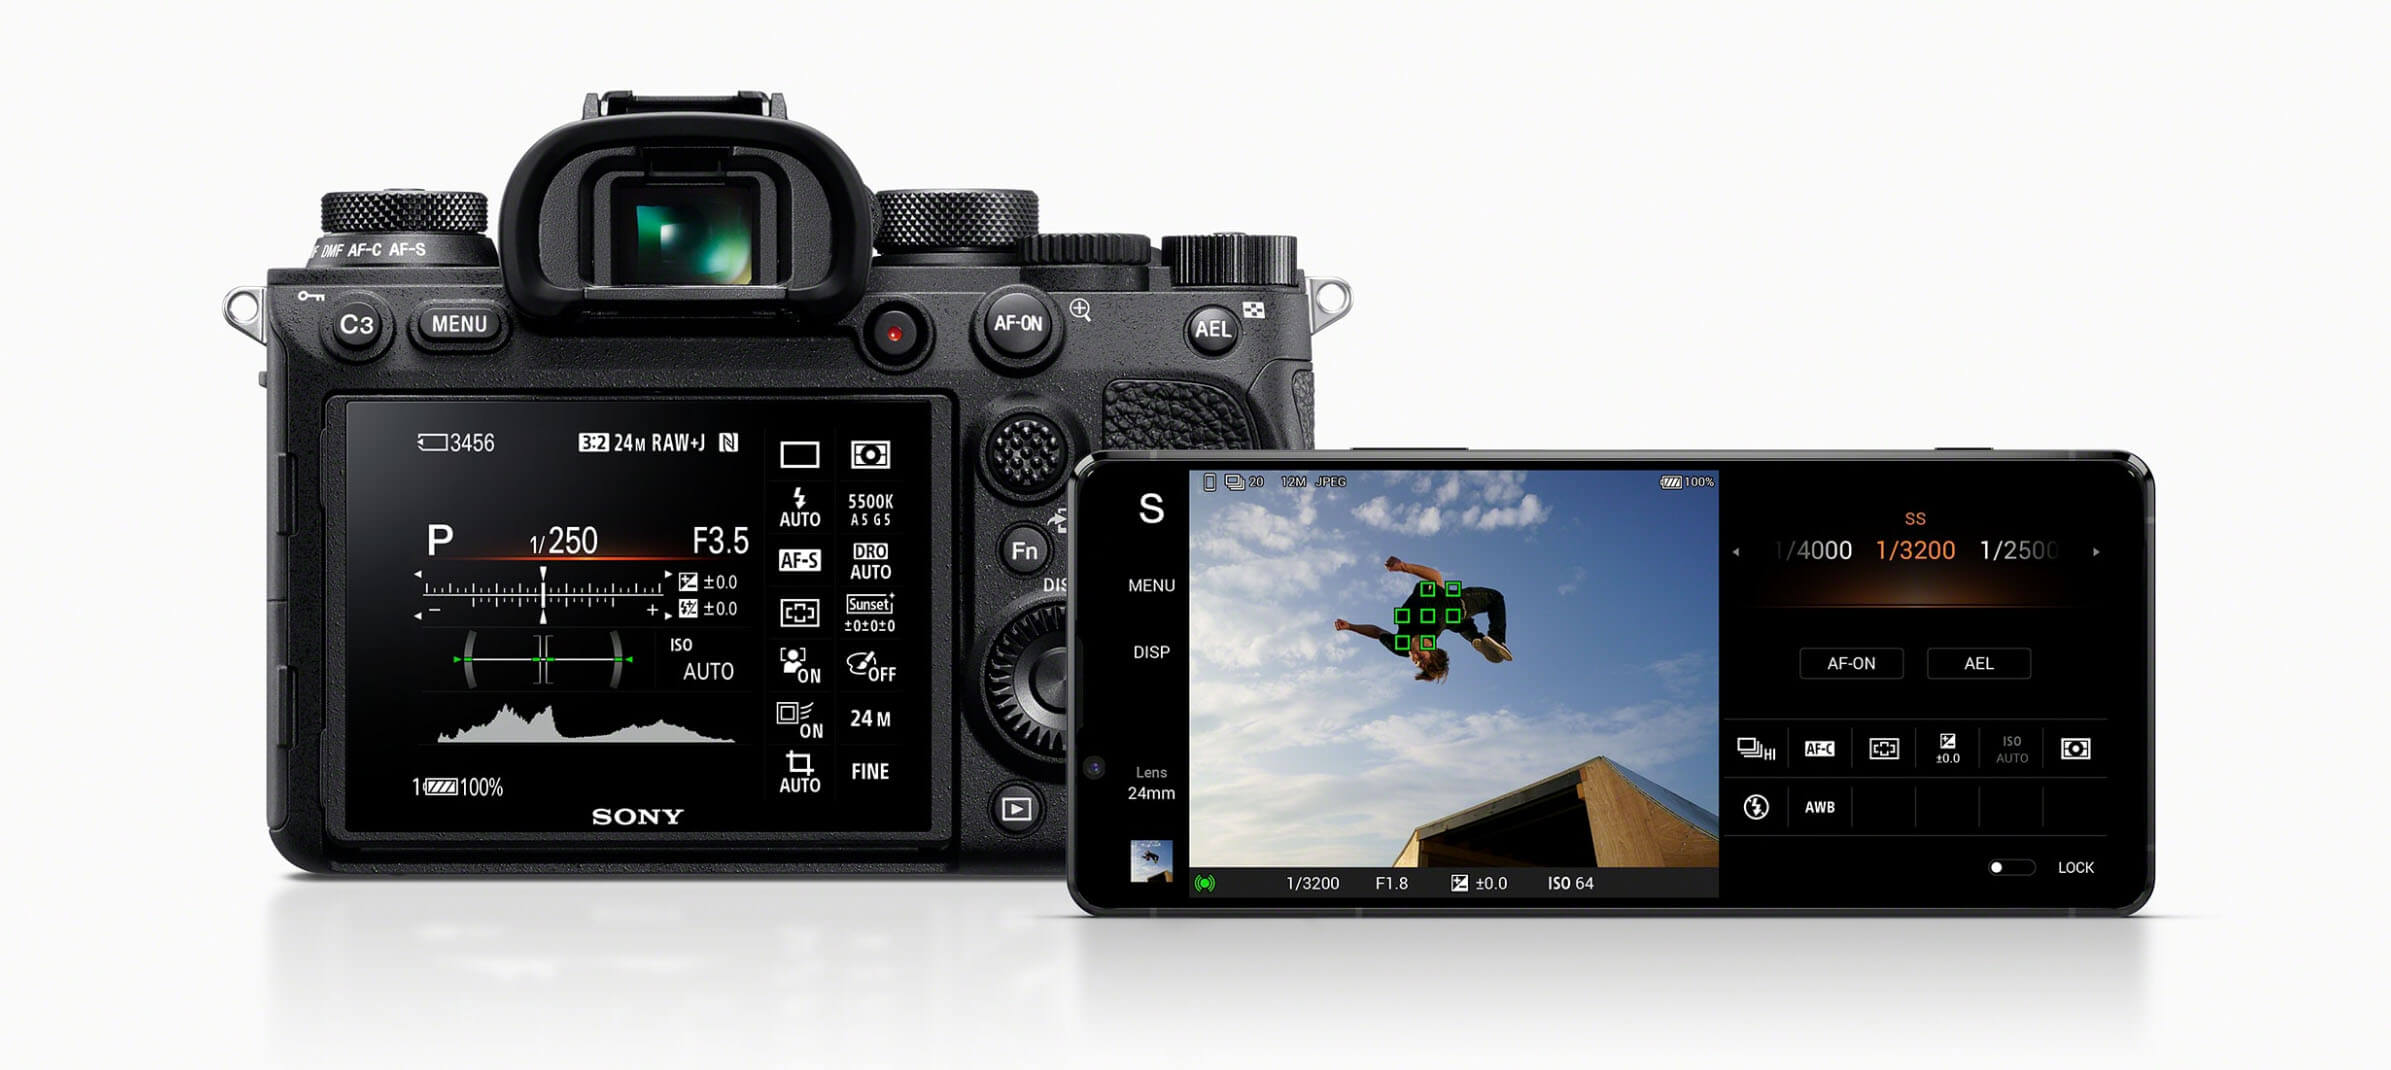 Xperia 1 II Camera Interface